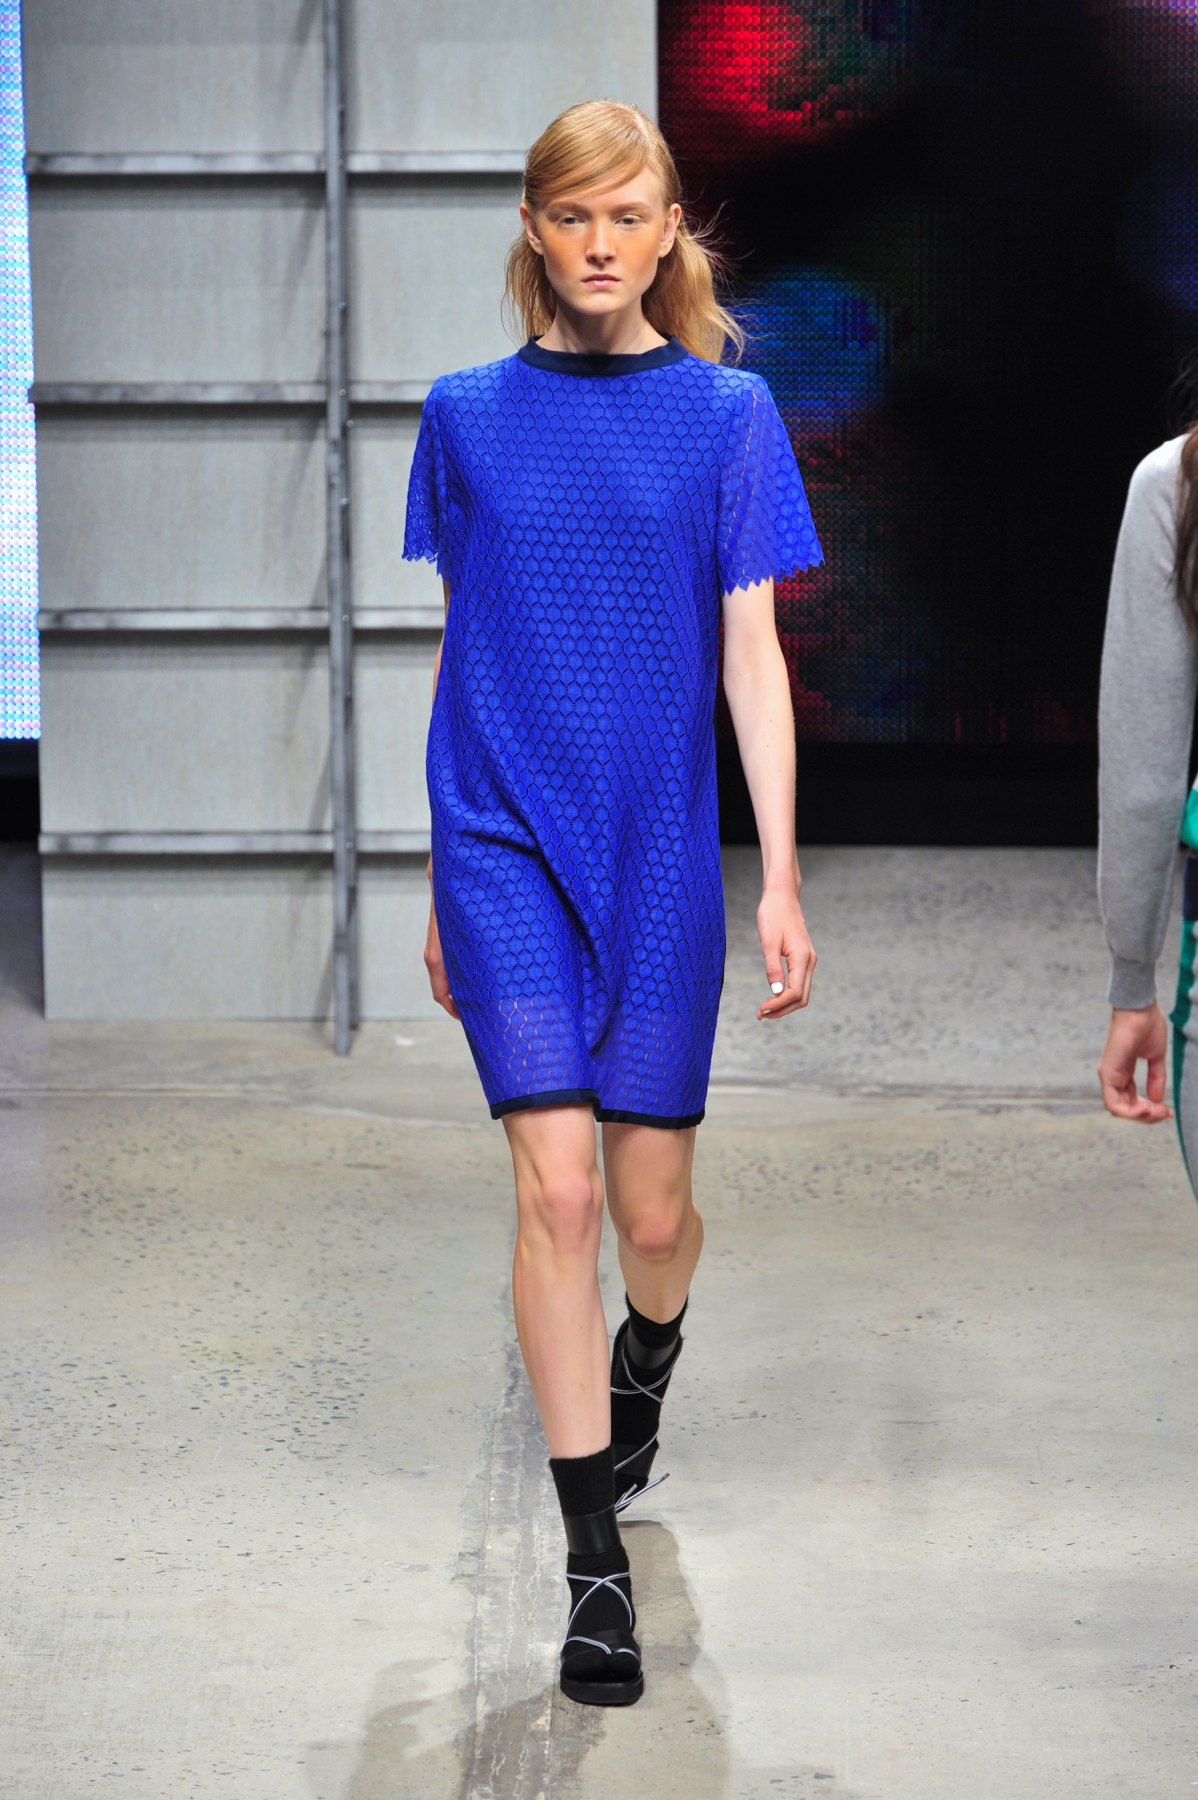 desfile-band-of-outsiders-nova-york-verao-2014-032